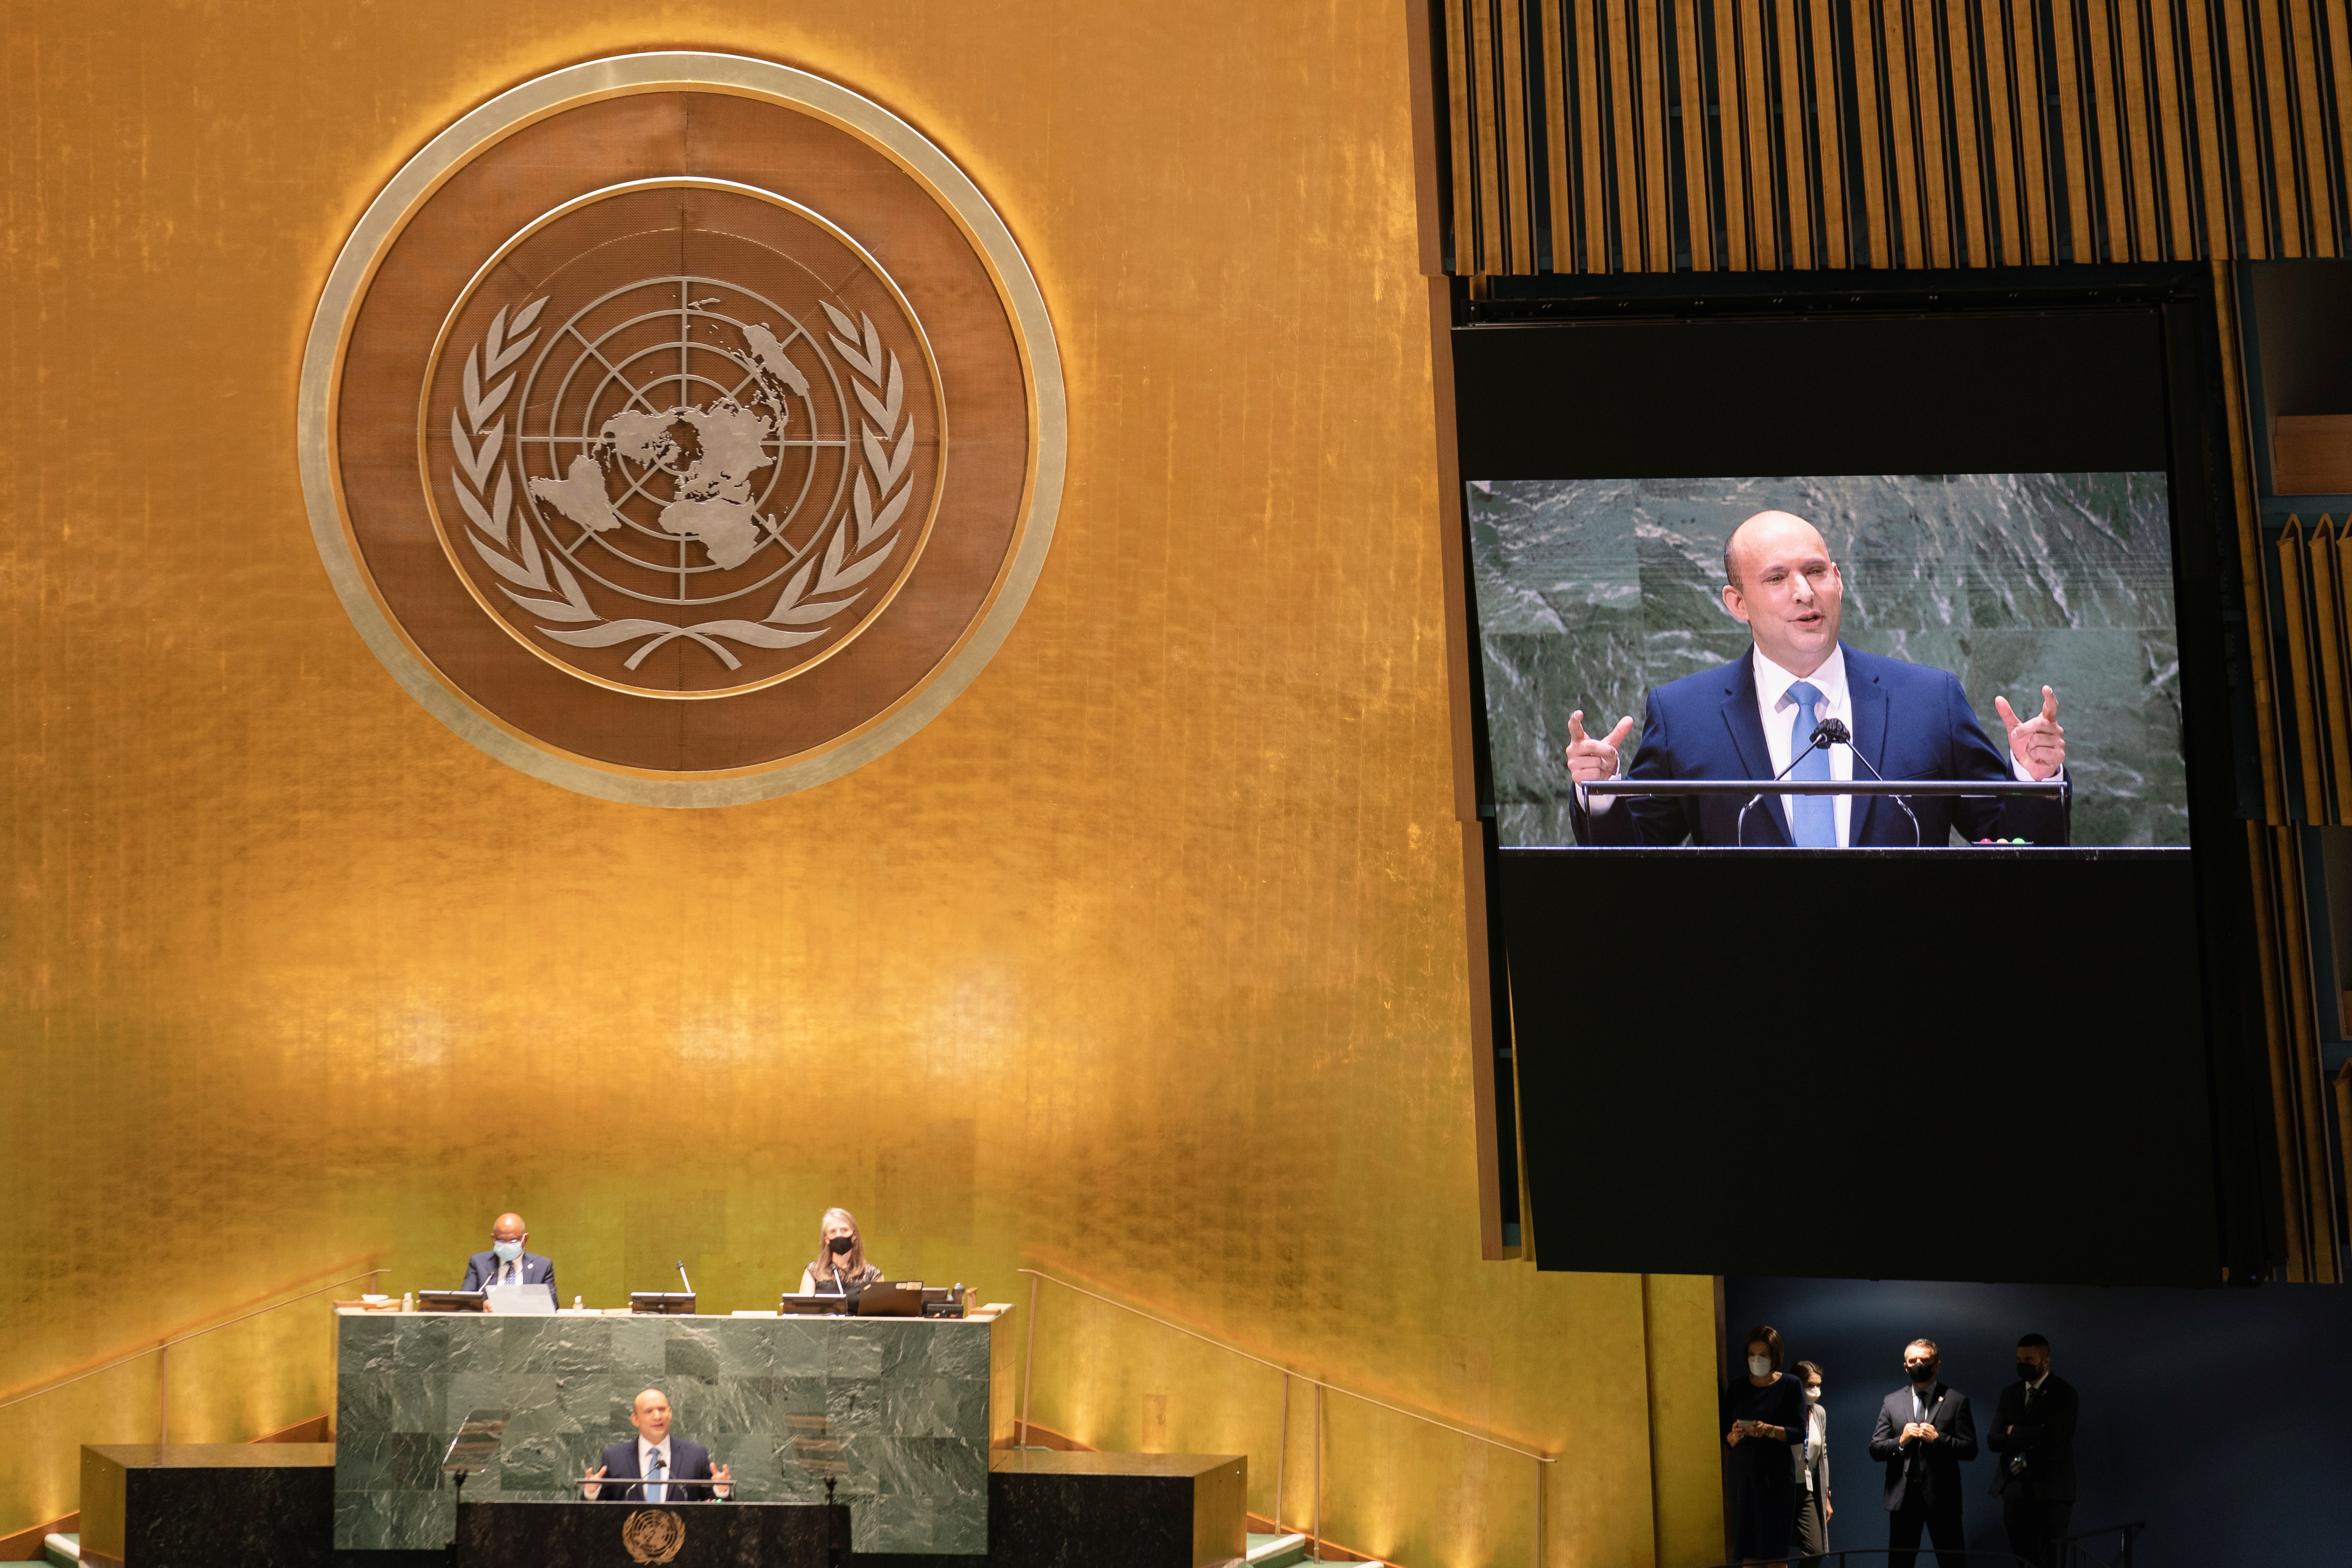 Israel's prime minister Naftali Bennett addresses the 76th Session of the United Nations General Assembly, at the U.N. headquarters in New York, U.S., September 27, 2021. John Minchillo/Pool via REUTERS